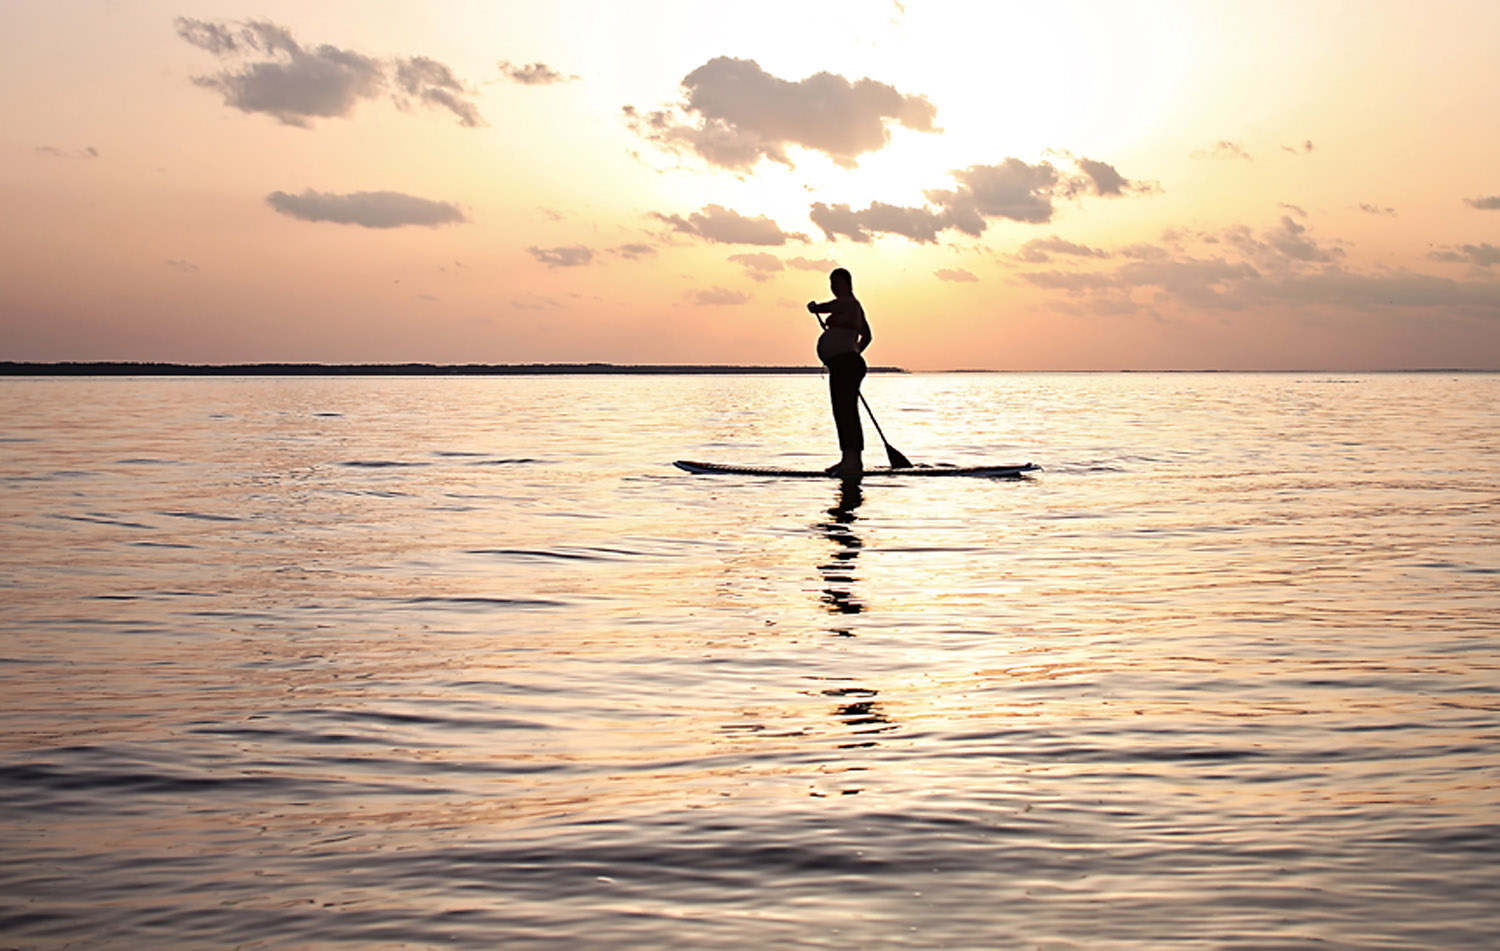 Pregnant woman stand up paddle boarding at sunset in OBX NC